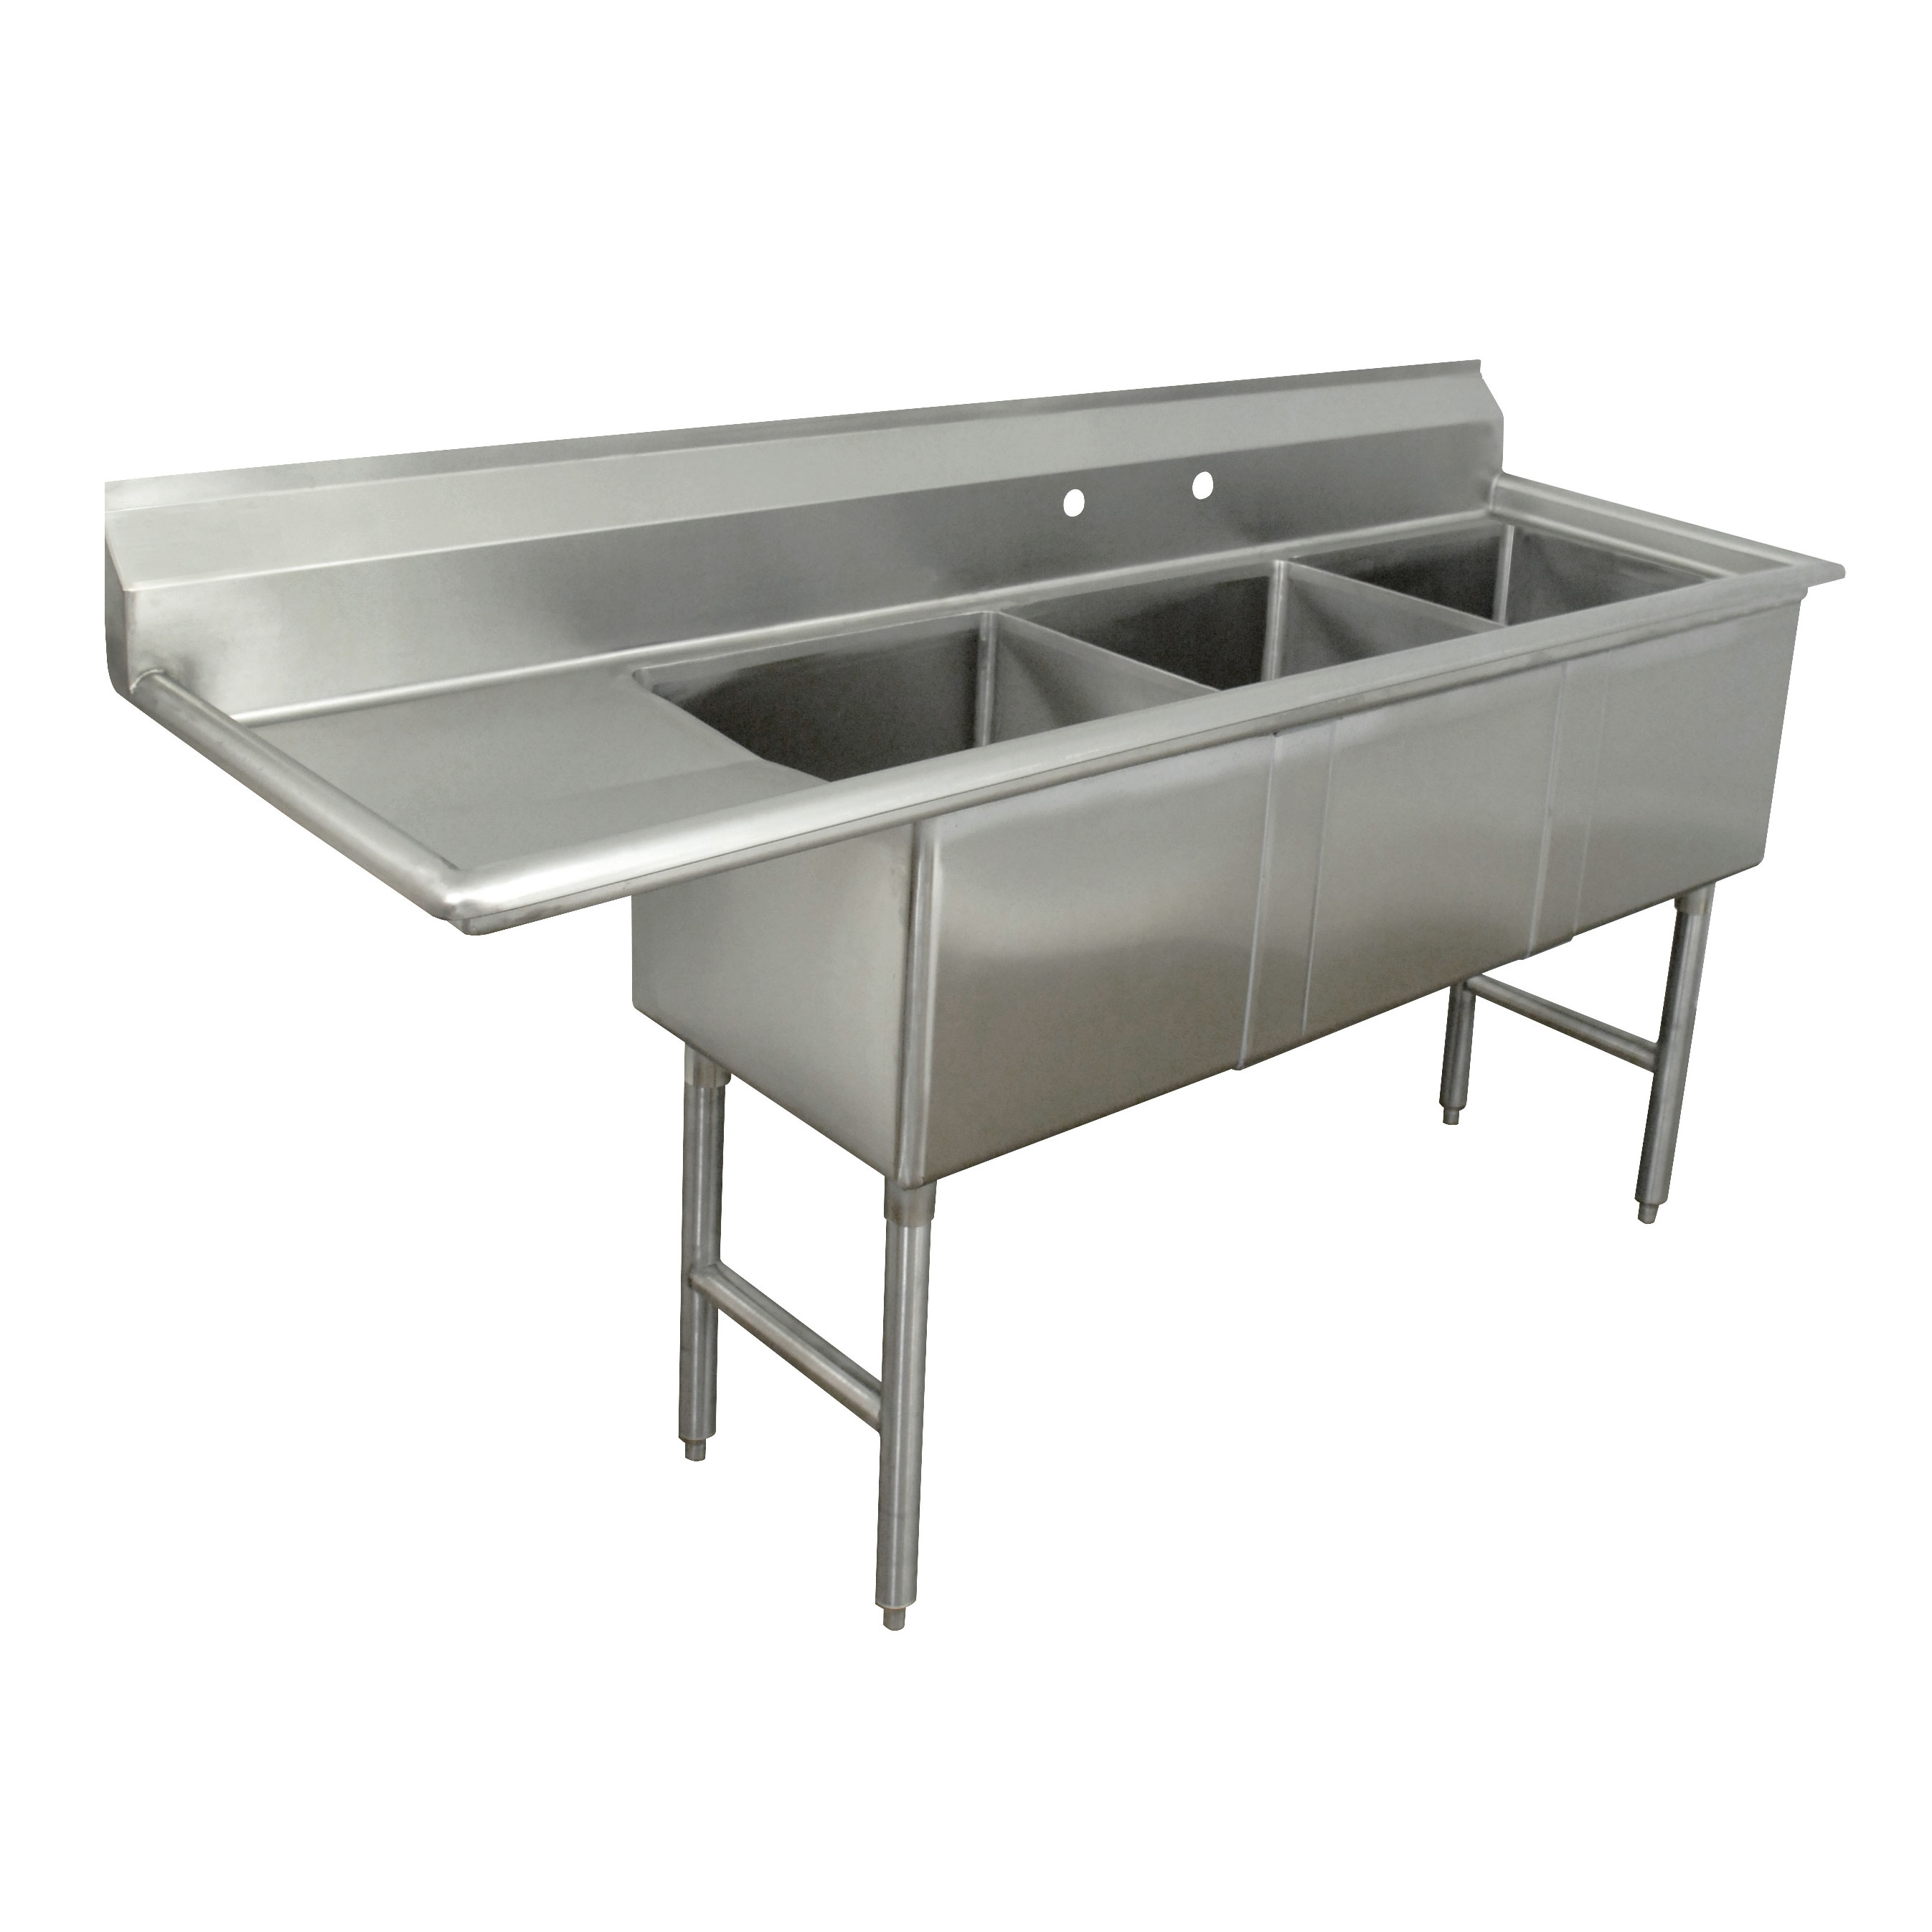 FC-3-1818-18L Advance Tabco sink, (3) three compartment